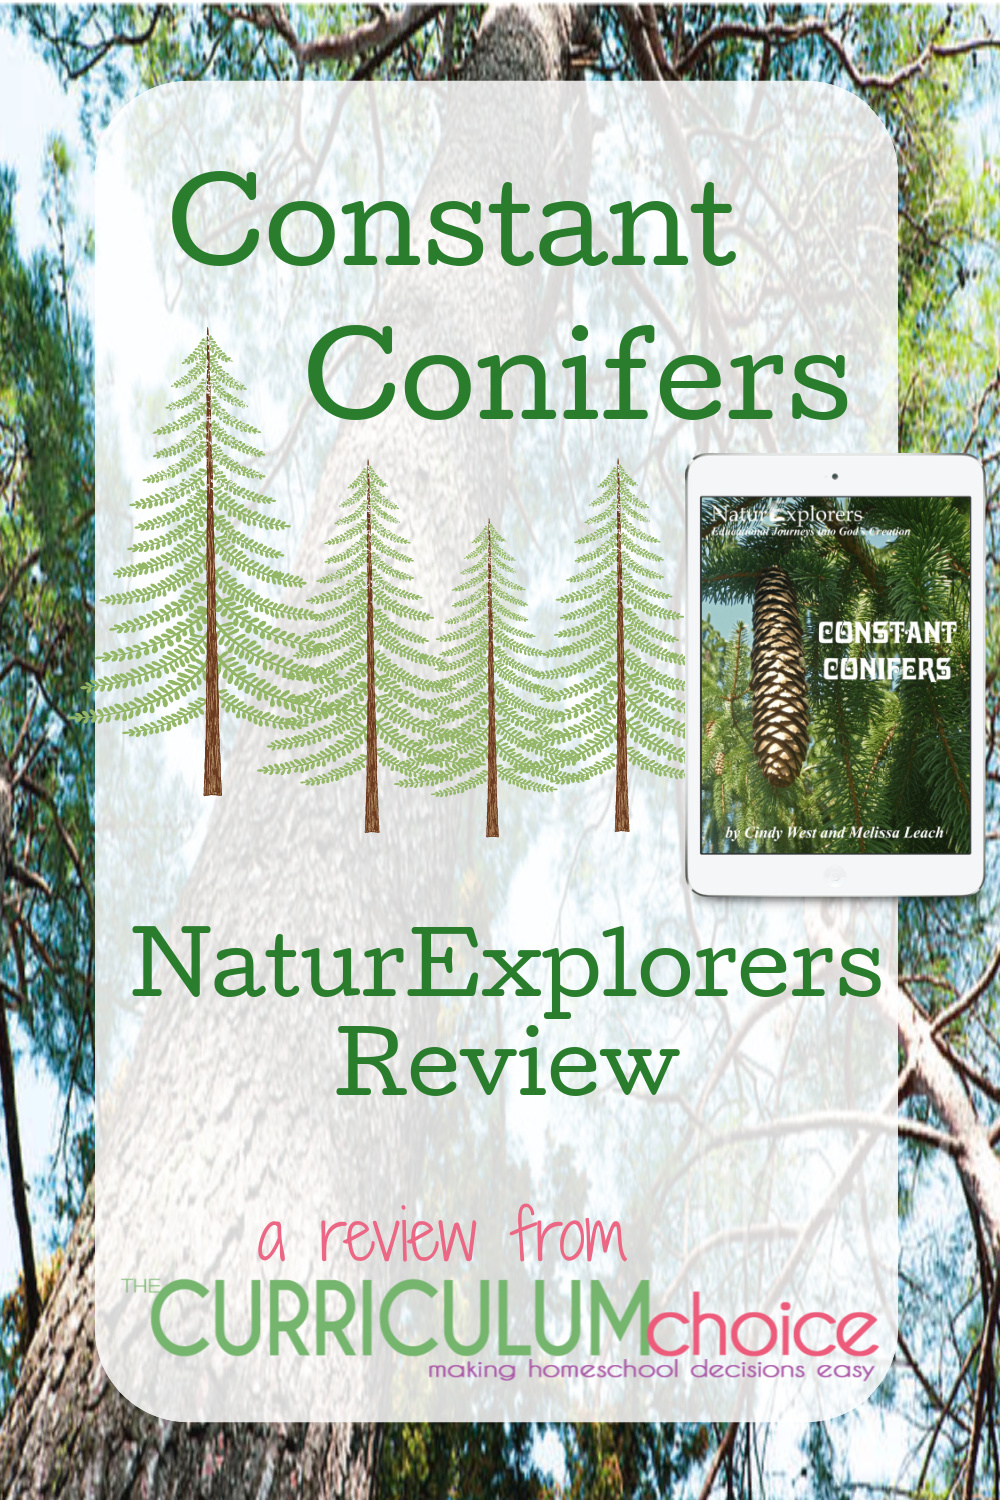 NaturExplorers Constant Conifers - 30+ nature walks; learn about all parts of conifers including cones, leaves, branches, sap and more